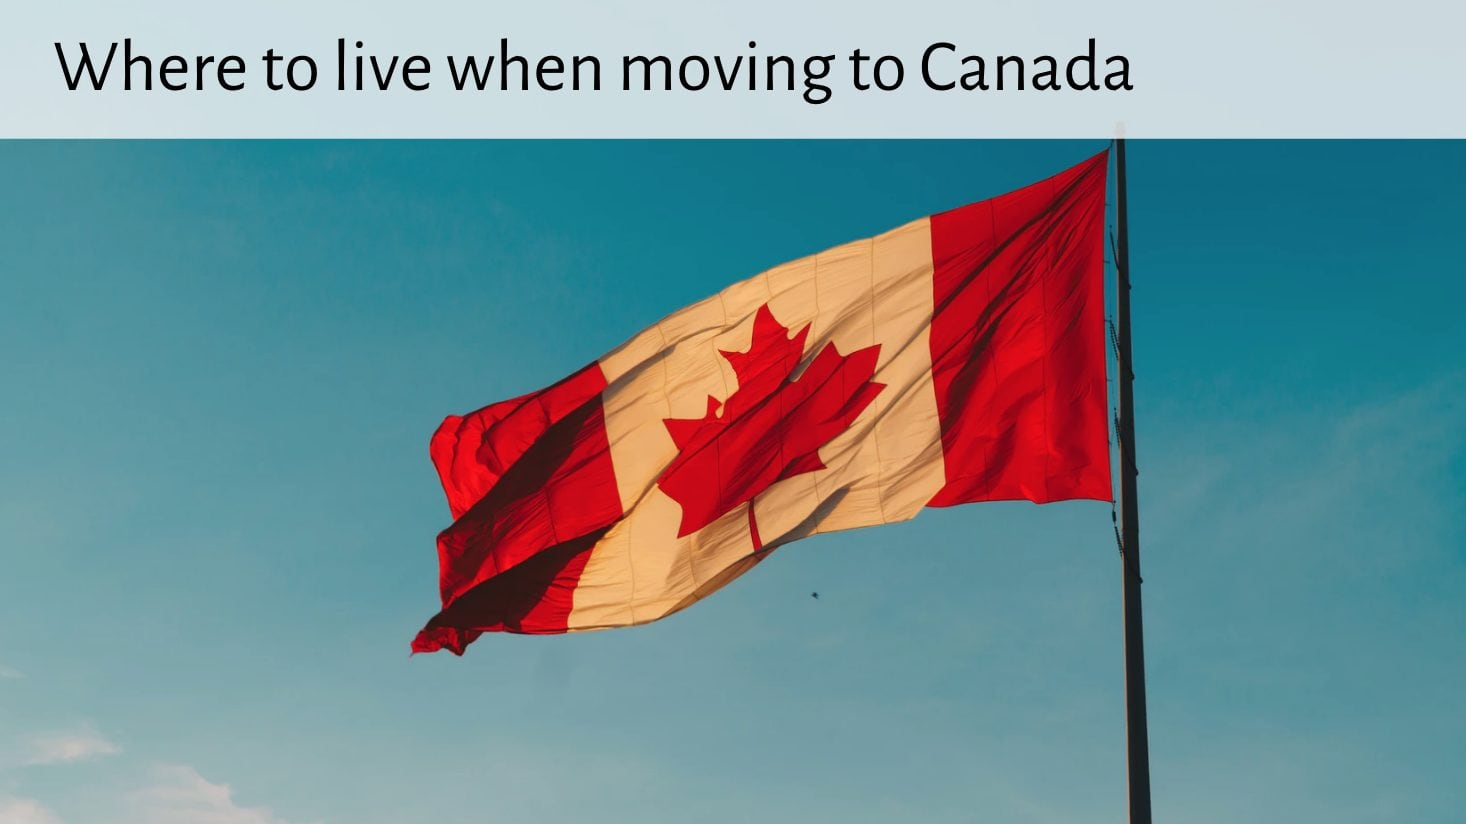 Hot topic where to live in Canada